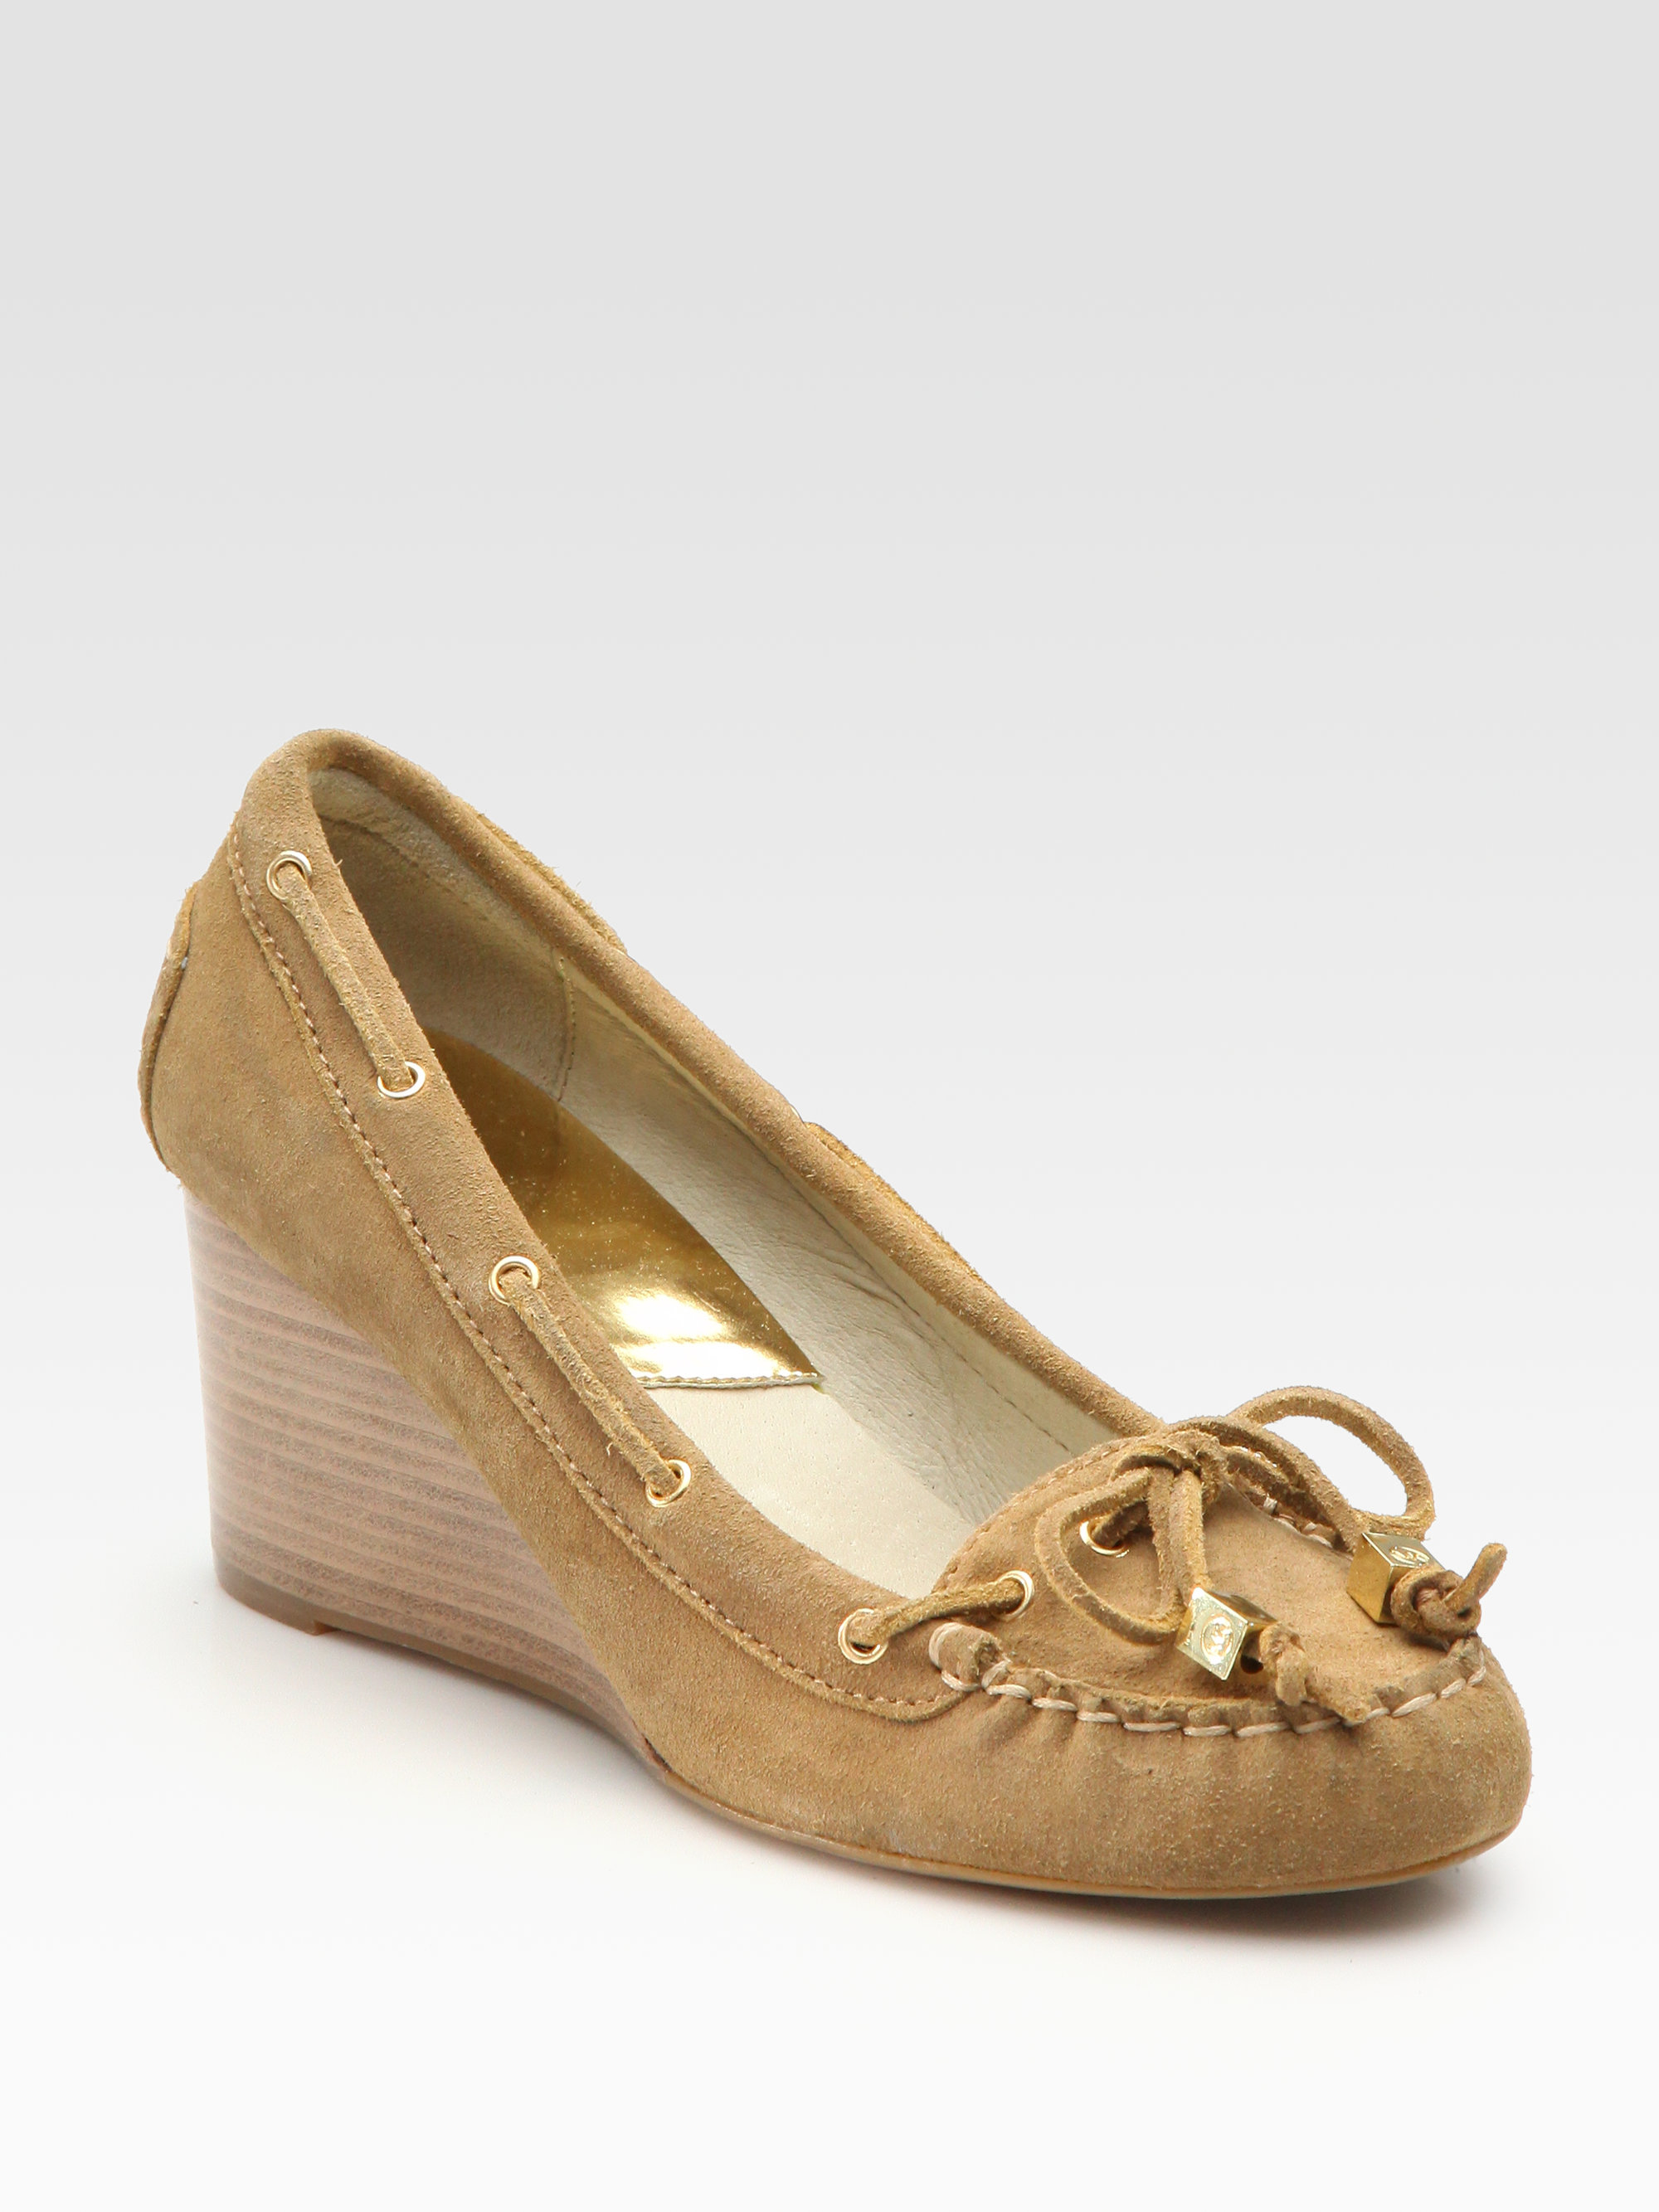 412df46d8c1 Lyst - MICHAEL Michael Kors Amber Suede Moccasin Wedges in Natural